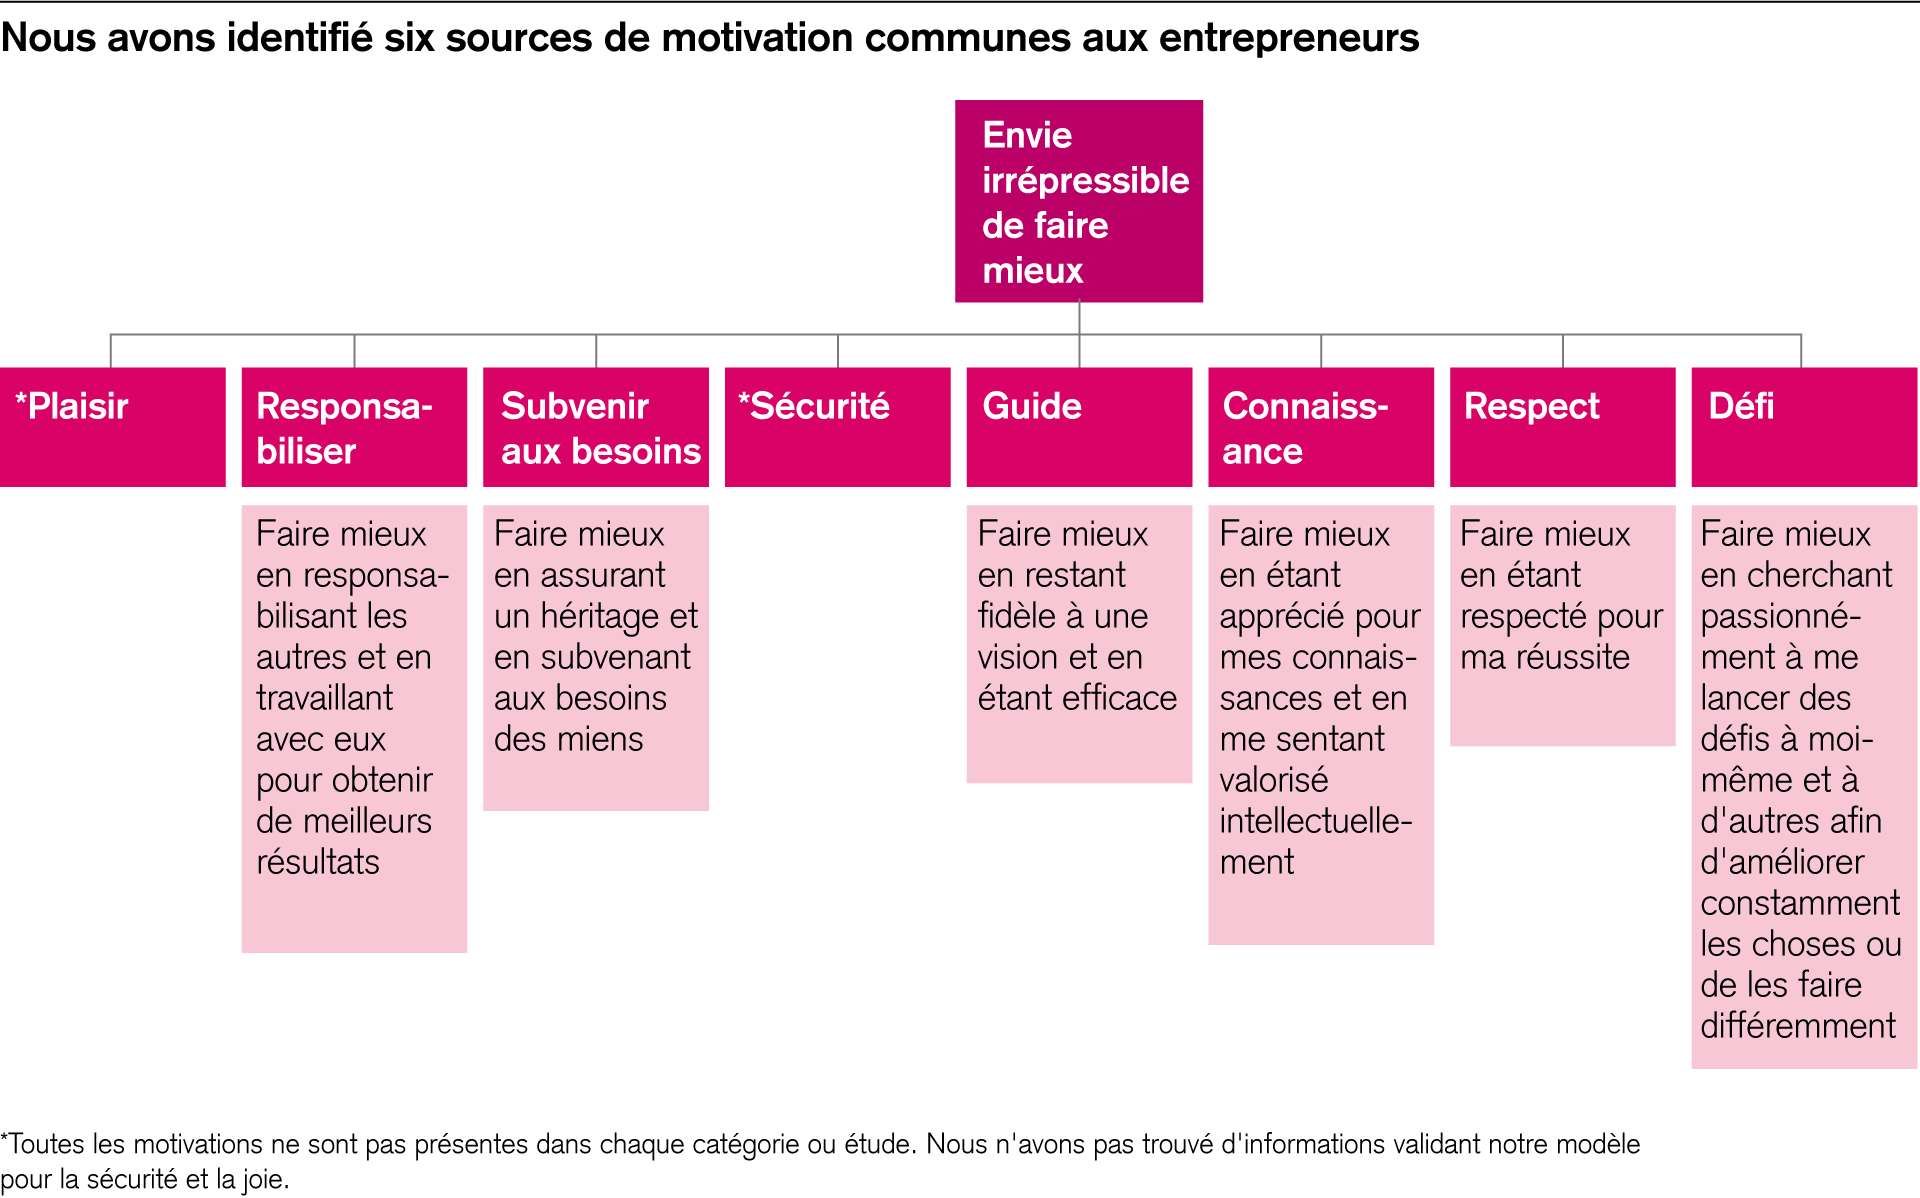 Les six facteurs de motivation